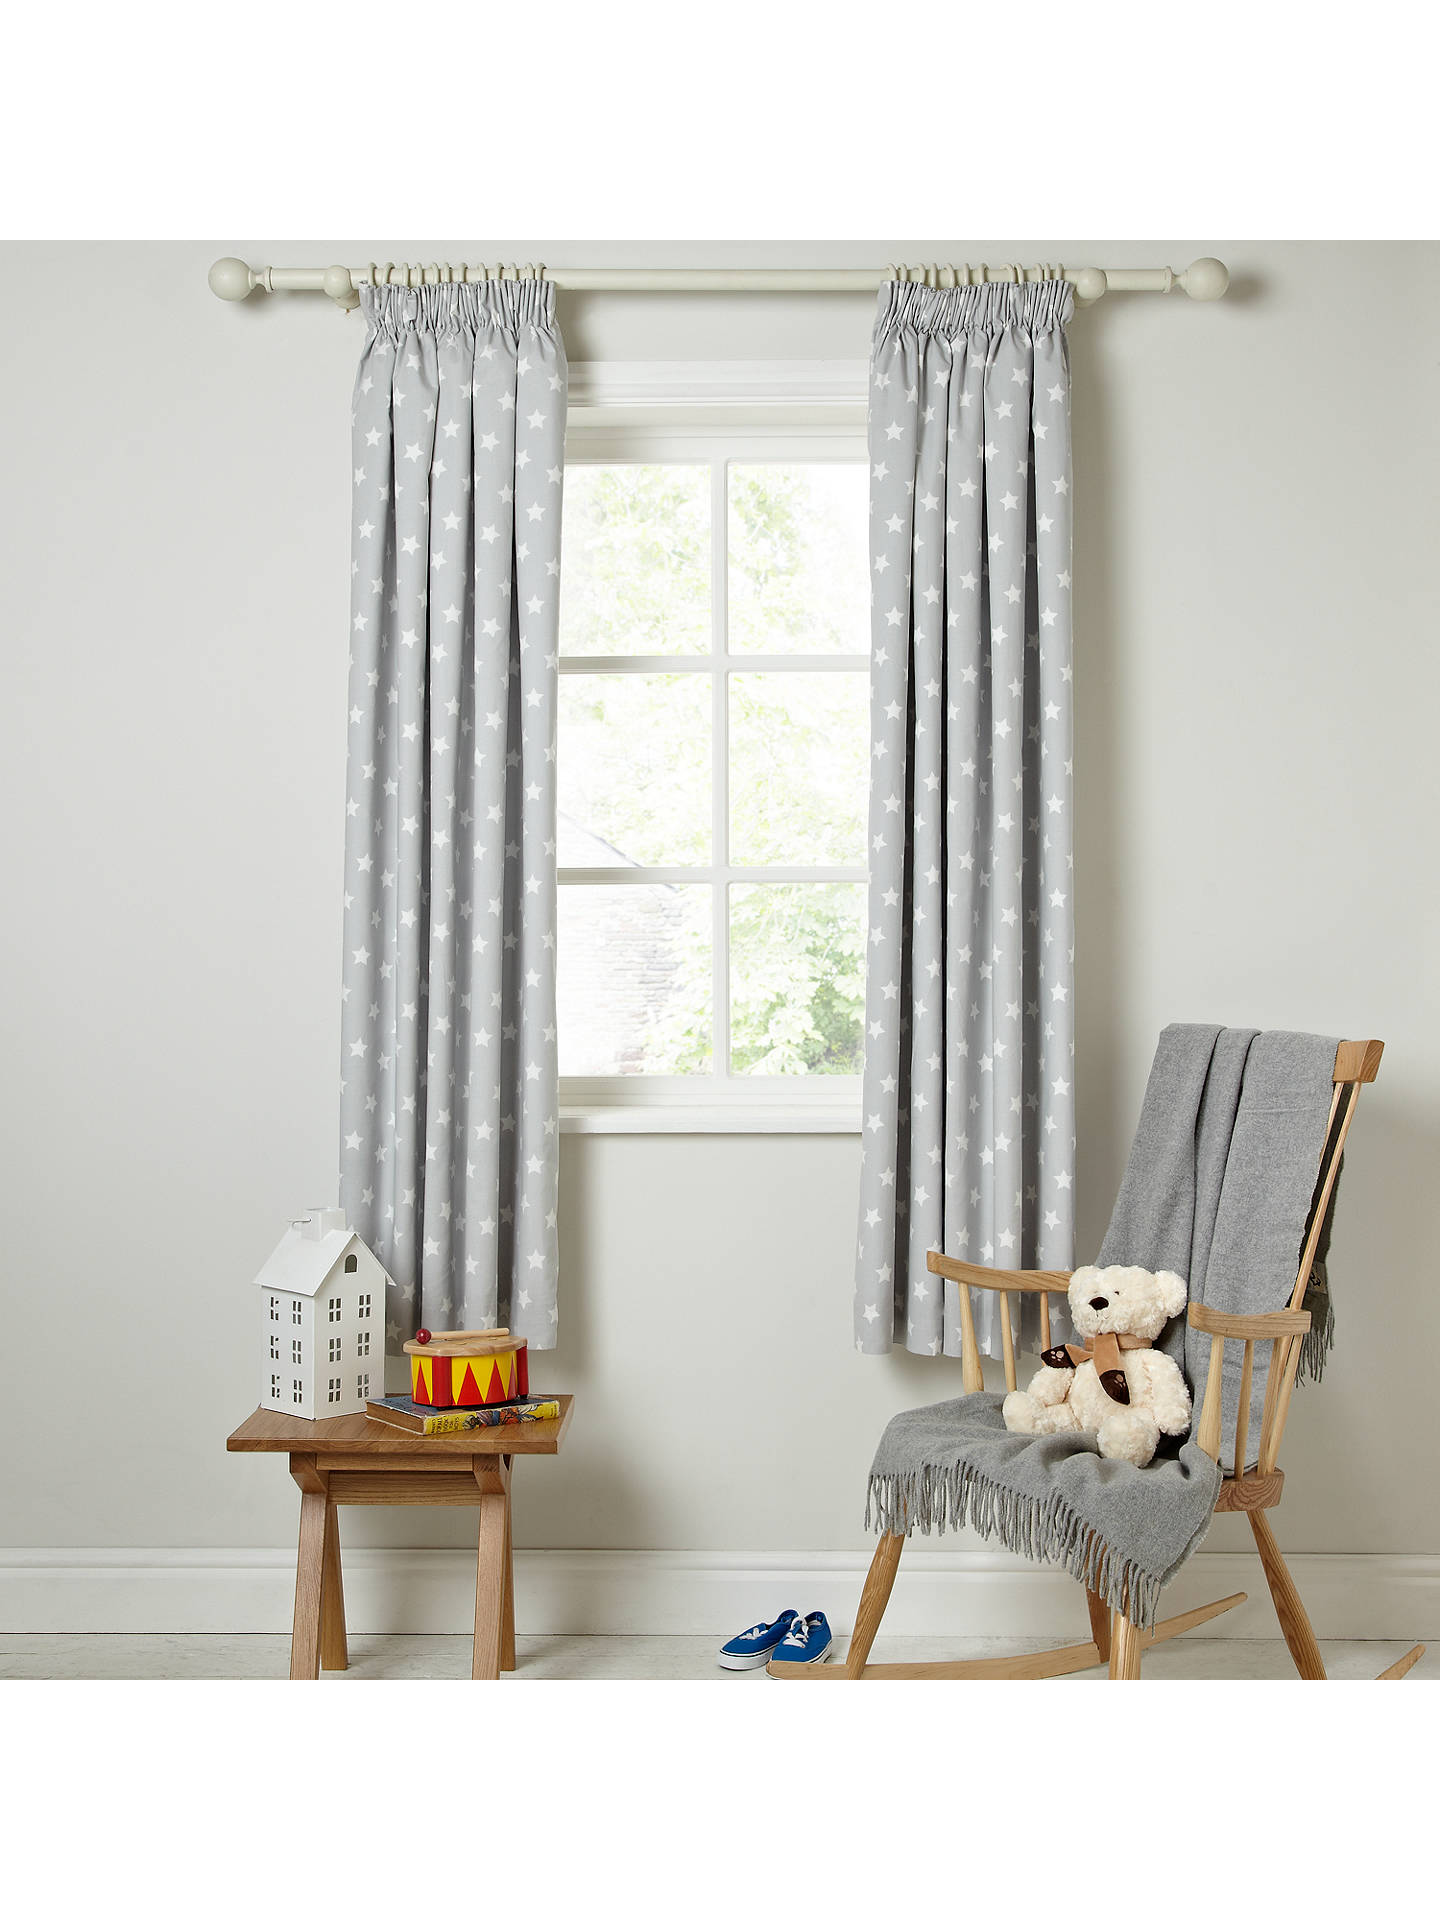 Buylittle Home At John Lewis Star Pencil Pleat Pair Blackout Lined Curtains W165 X Drop